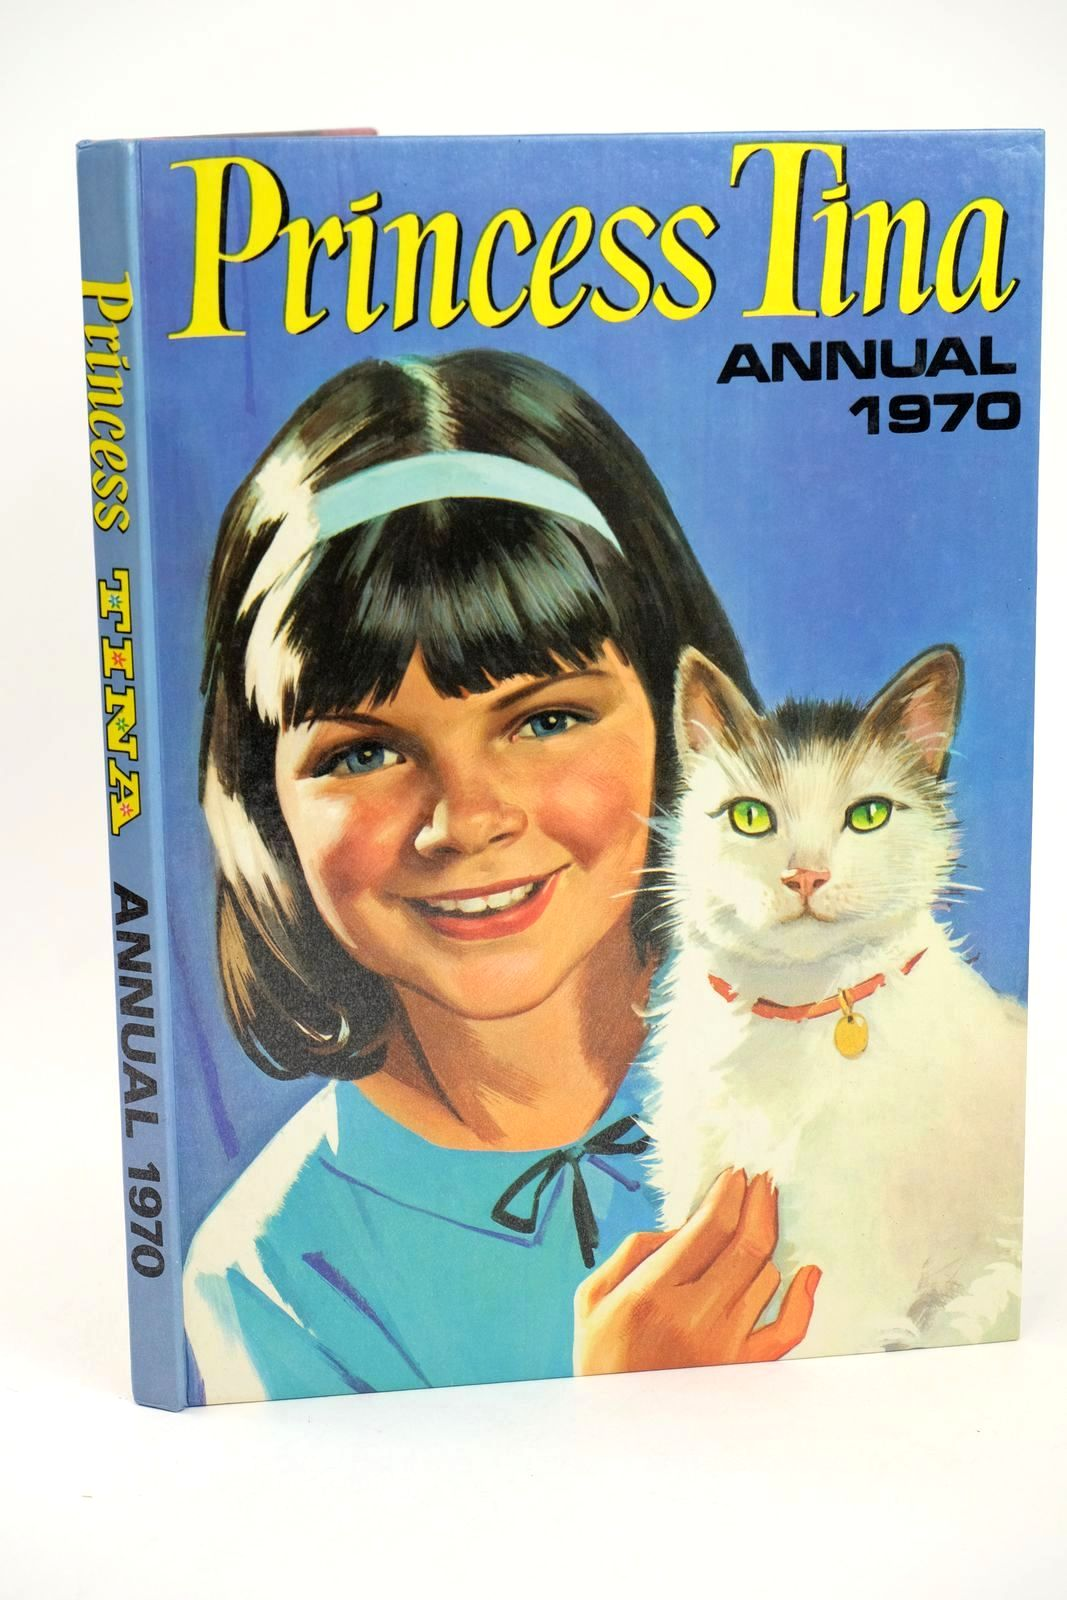 Photo of PRINCESS TINA ANNUAL 1970 published by IPC Magazines Ltd. (STOCK CODE: 1318514)  for sale by Stella & Rose's Books